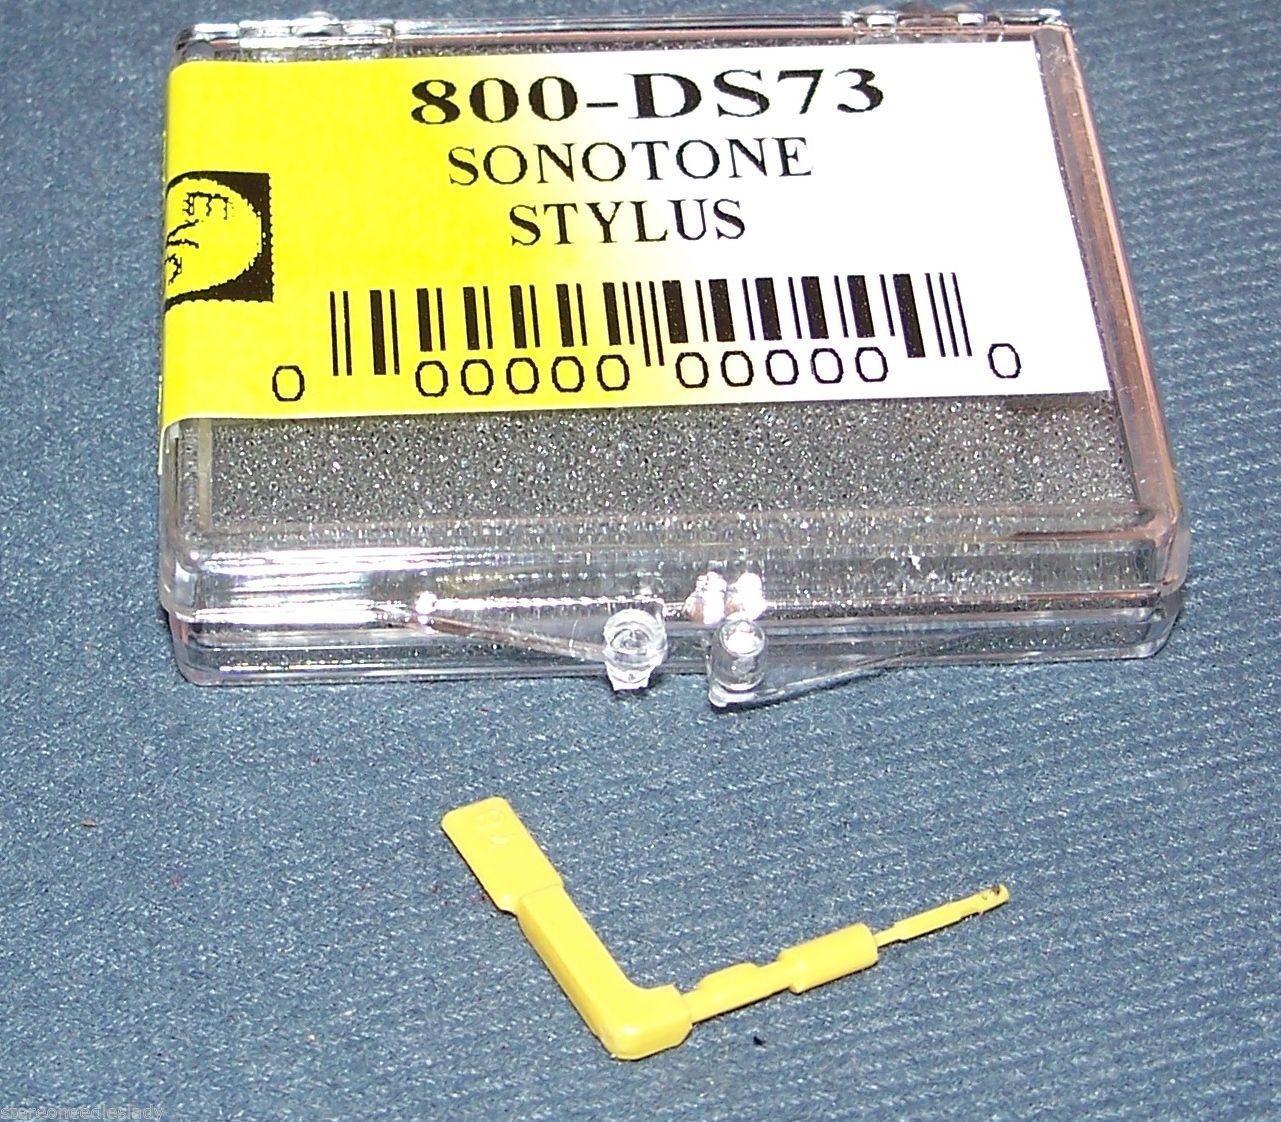 800-DS73 RECORD PLAYER STYLUS NEEDLE for N-2T 5T 7T for RCA 78827 N674 800-SS73